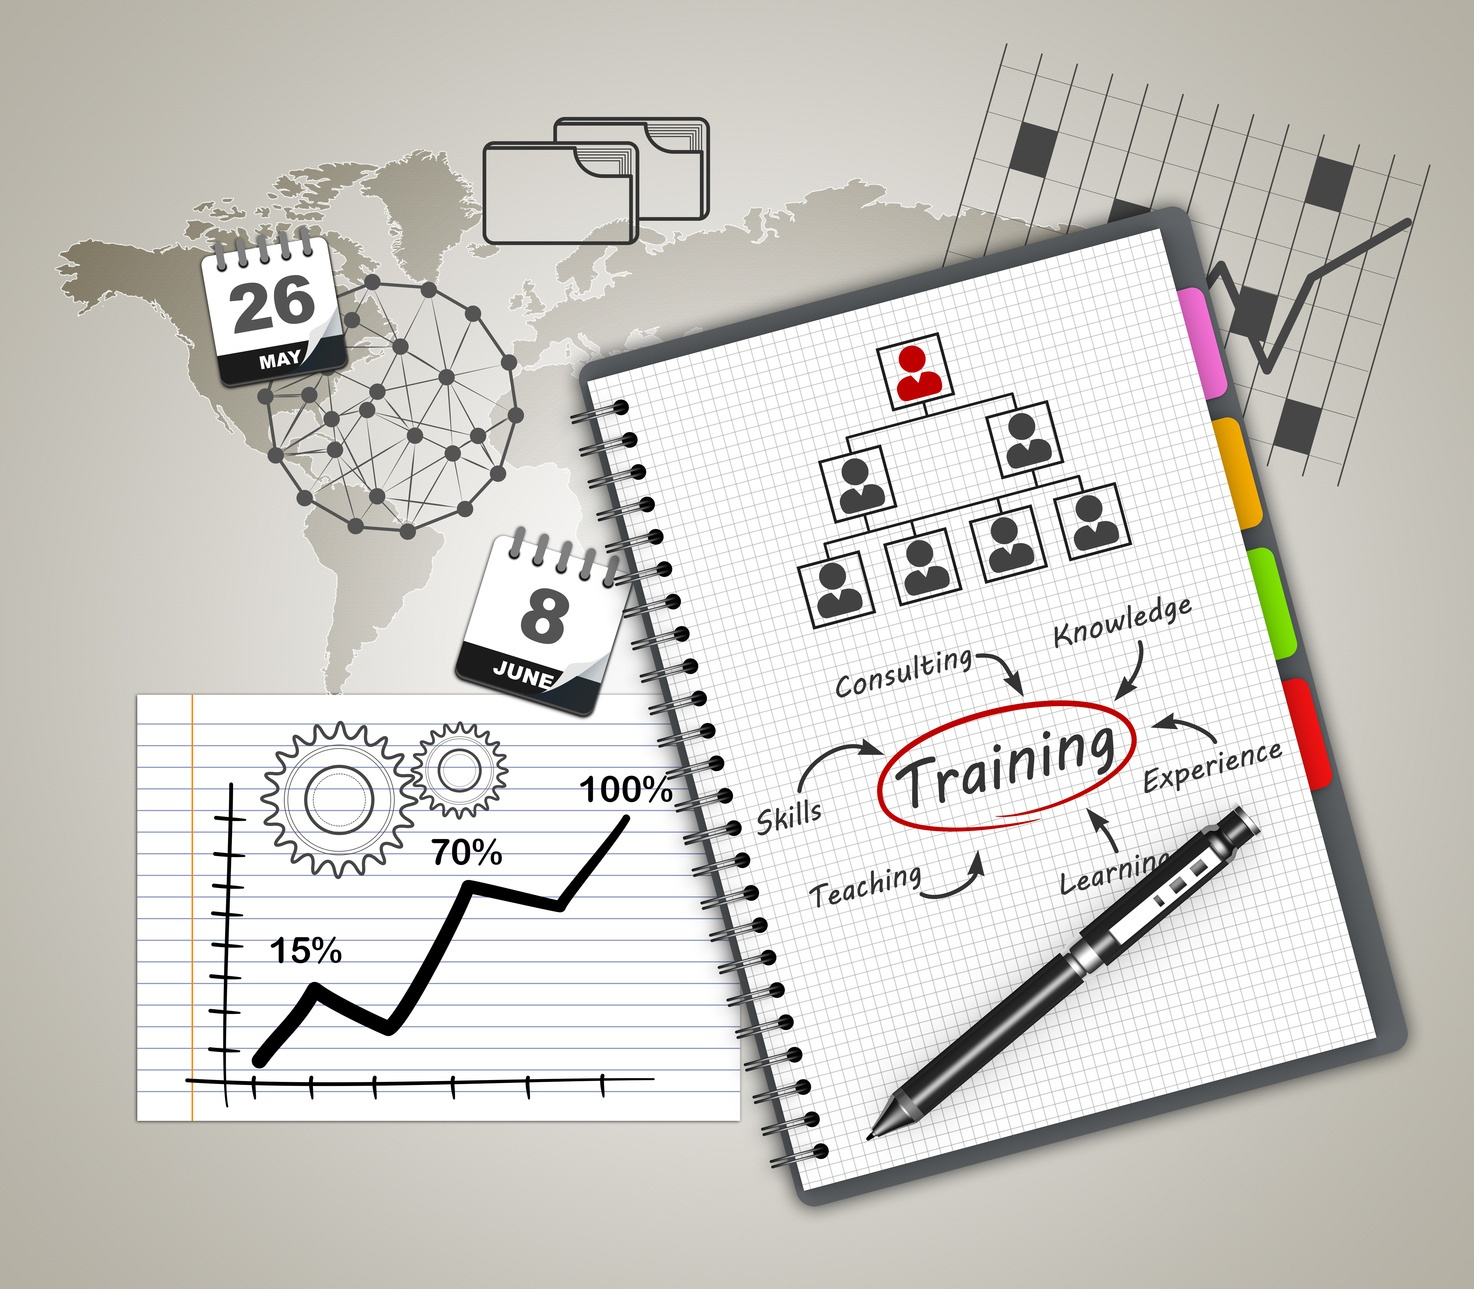 Ask These 5 Questions to Find the Best Digital Ad Sales Training for Your Team